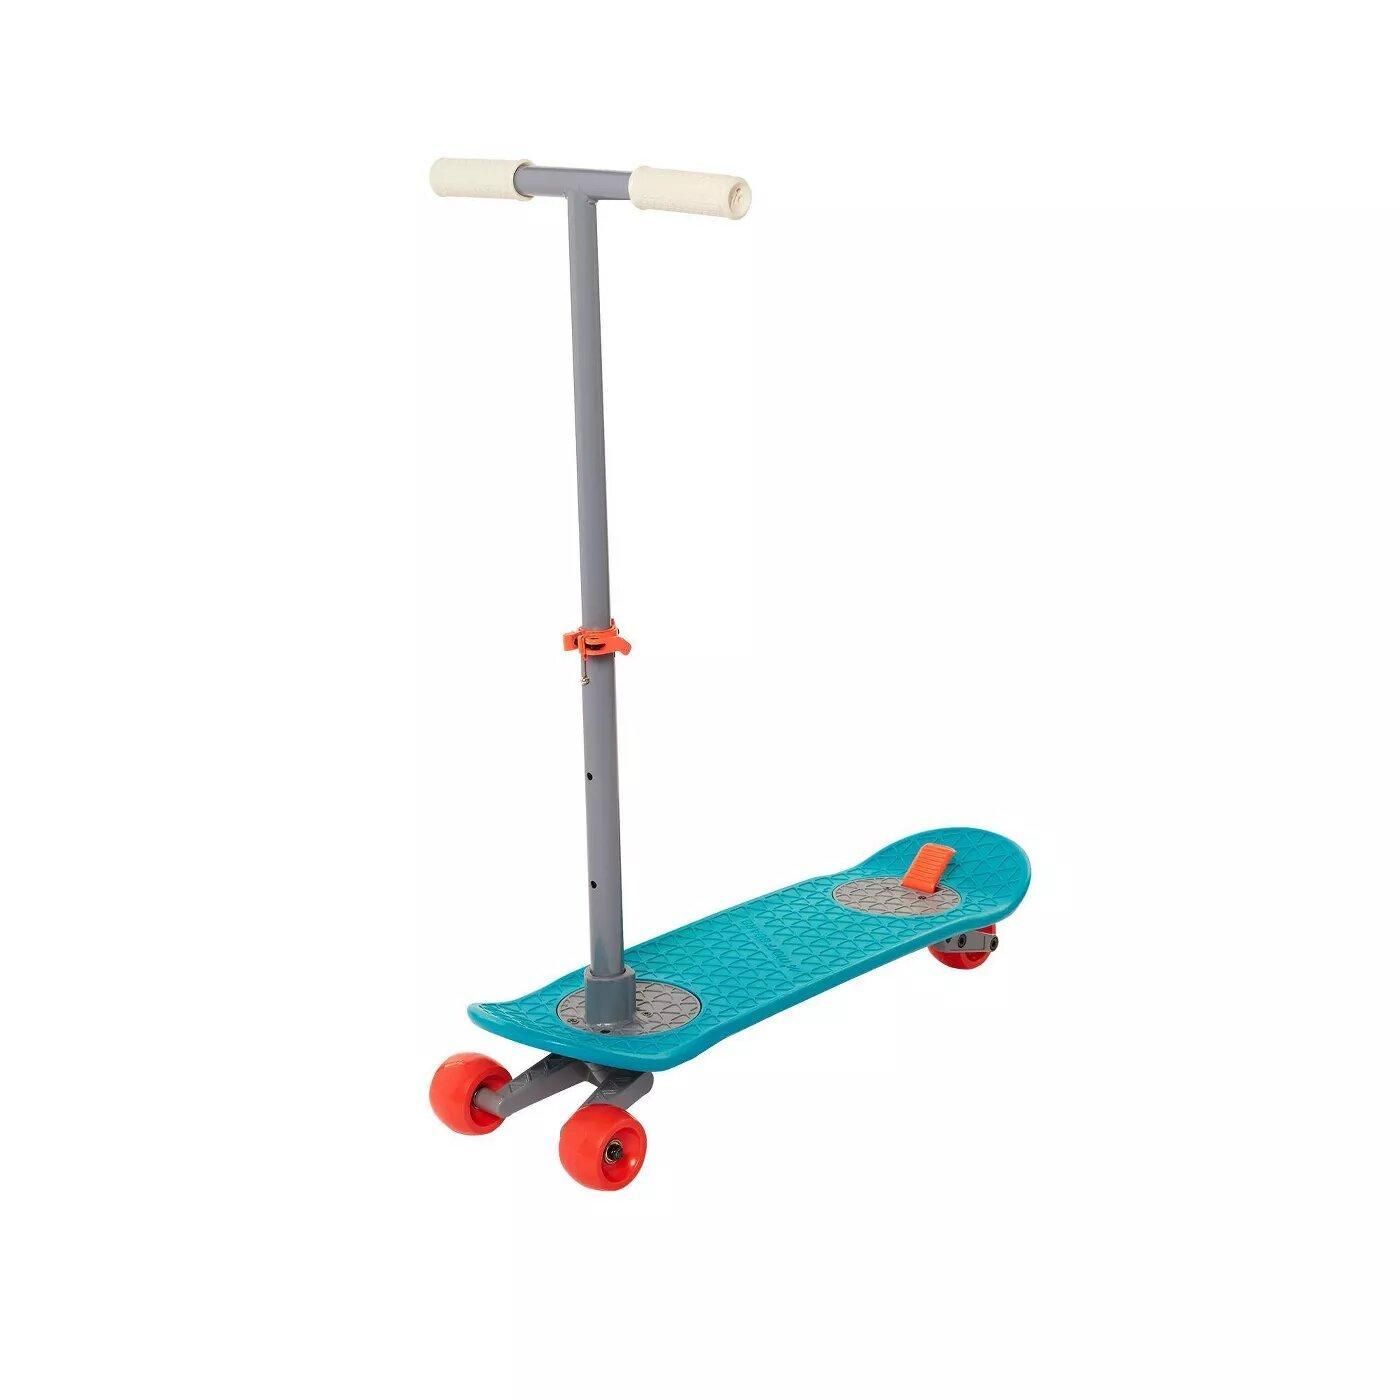 Refurbished MorfBoard Scooter & Skateboard Combo Set with ...